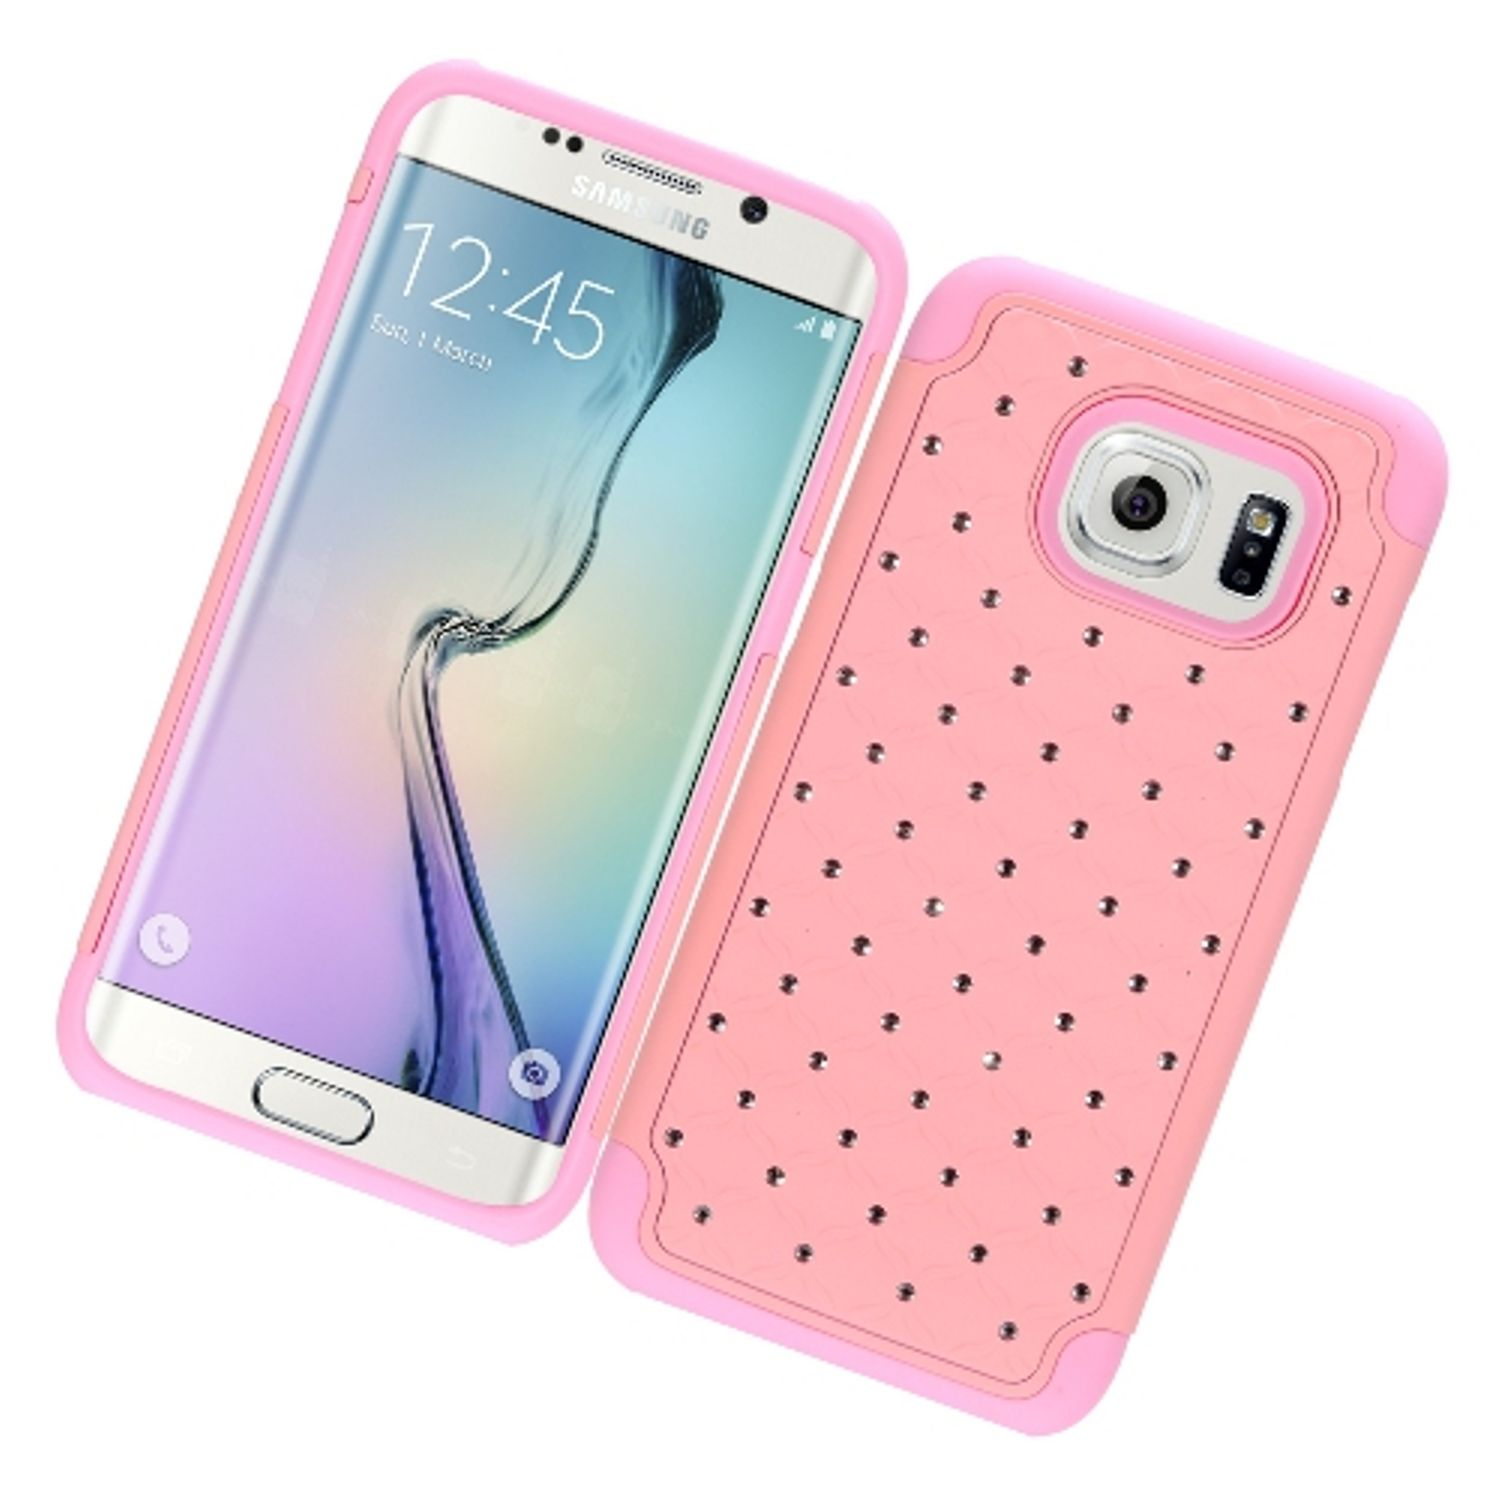 Samsung Galaxy S7 Edge Case, by Insten Rubberized Hard Snap-in Case Cover With Diamond For Samsung Galaxy S7 Edge